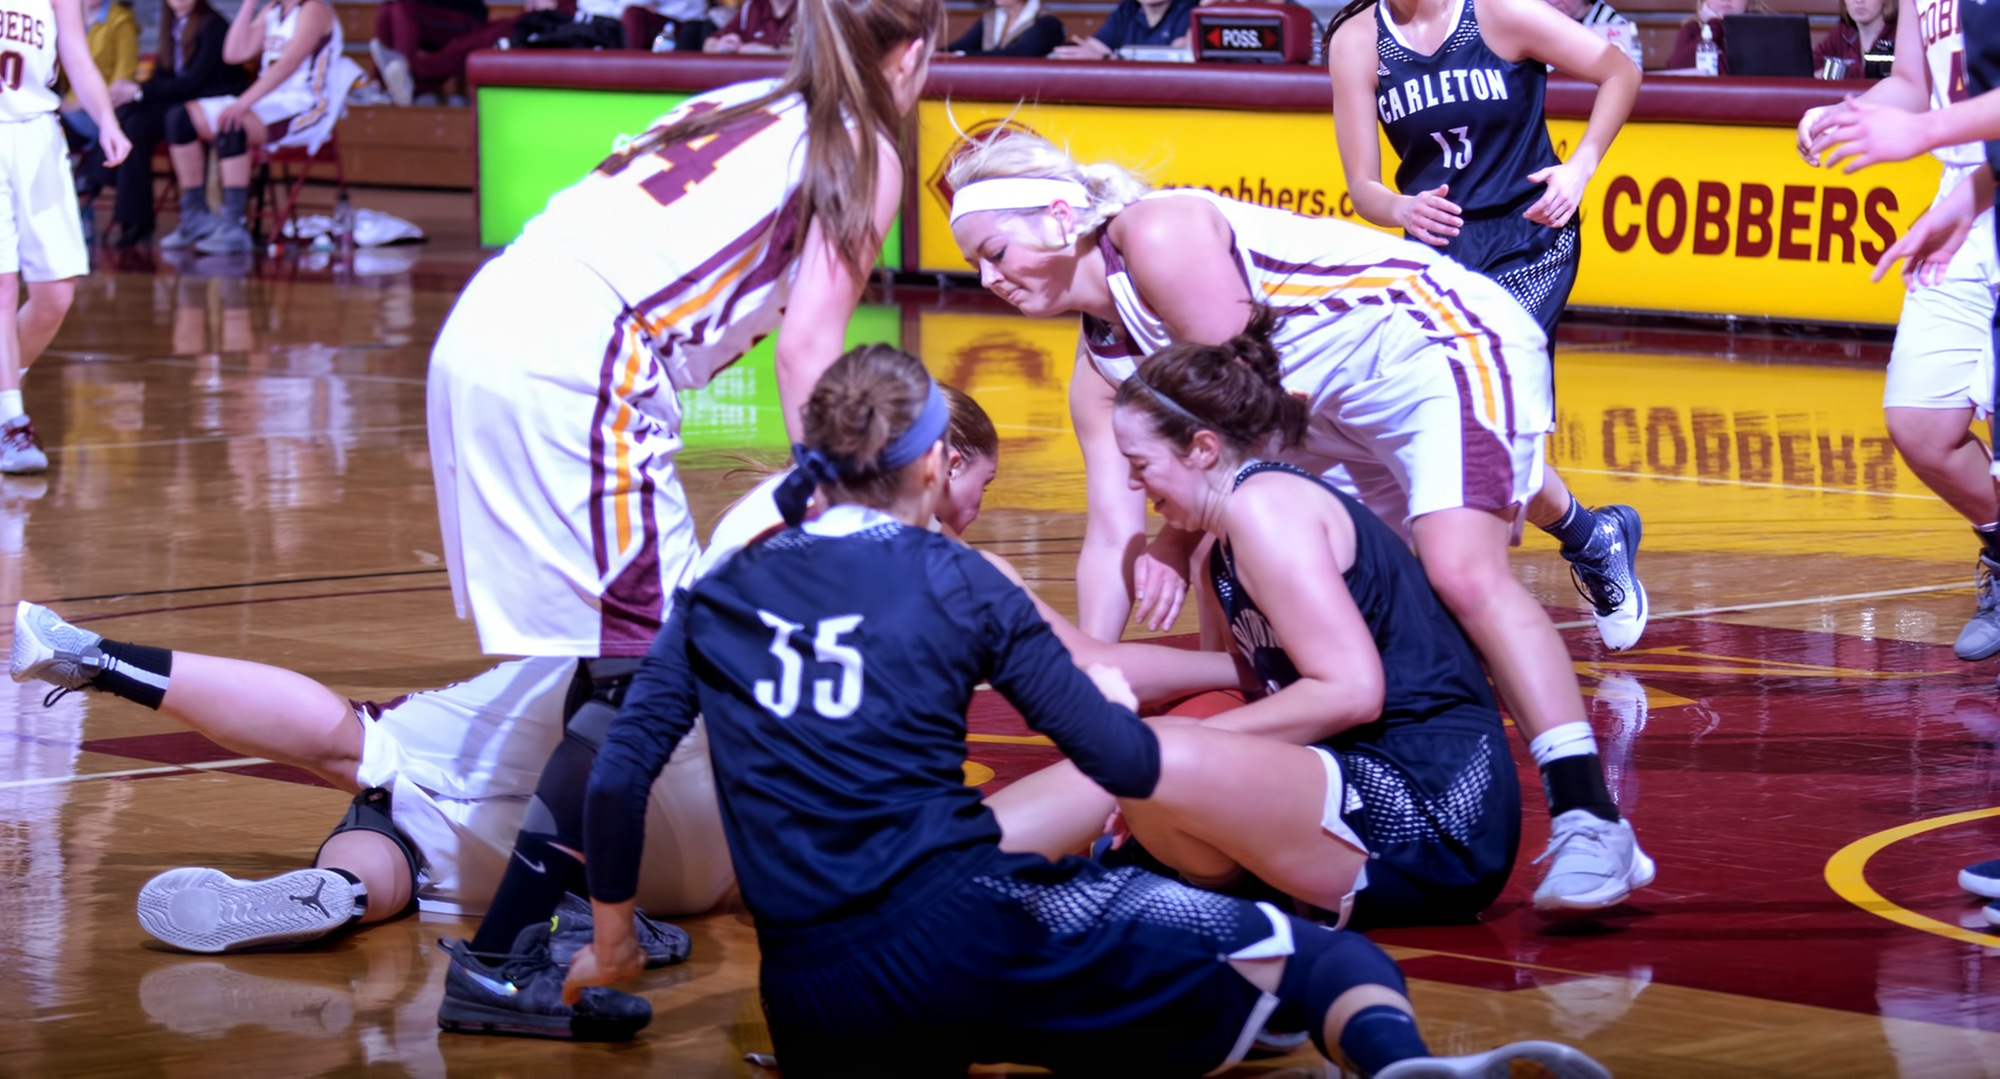 Players scramble to get control of the ball during the second quarter of the Cobbers' game with Carleton.